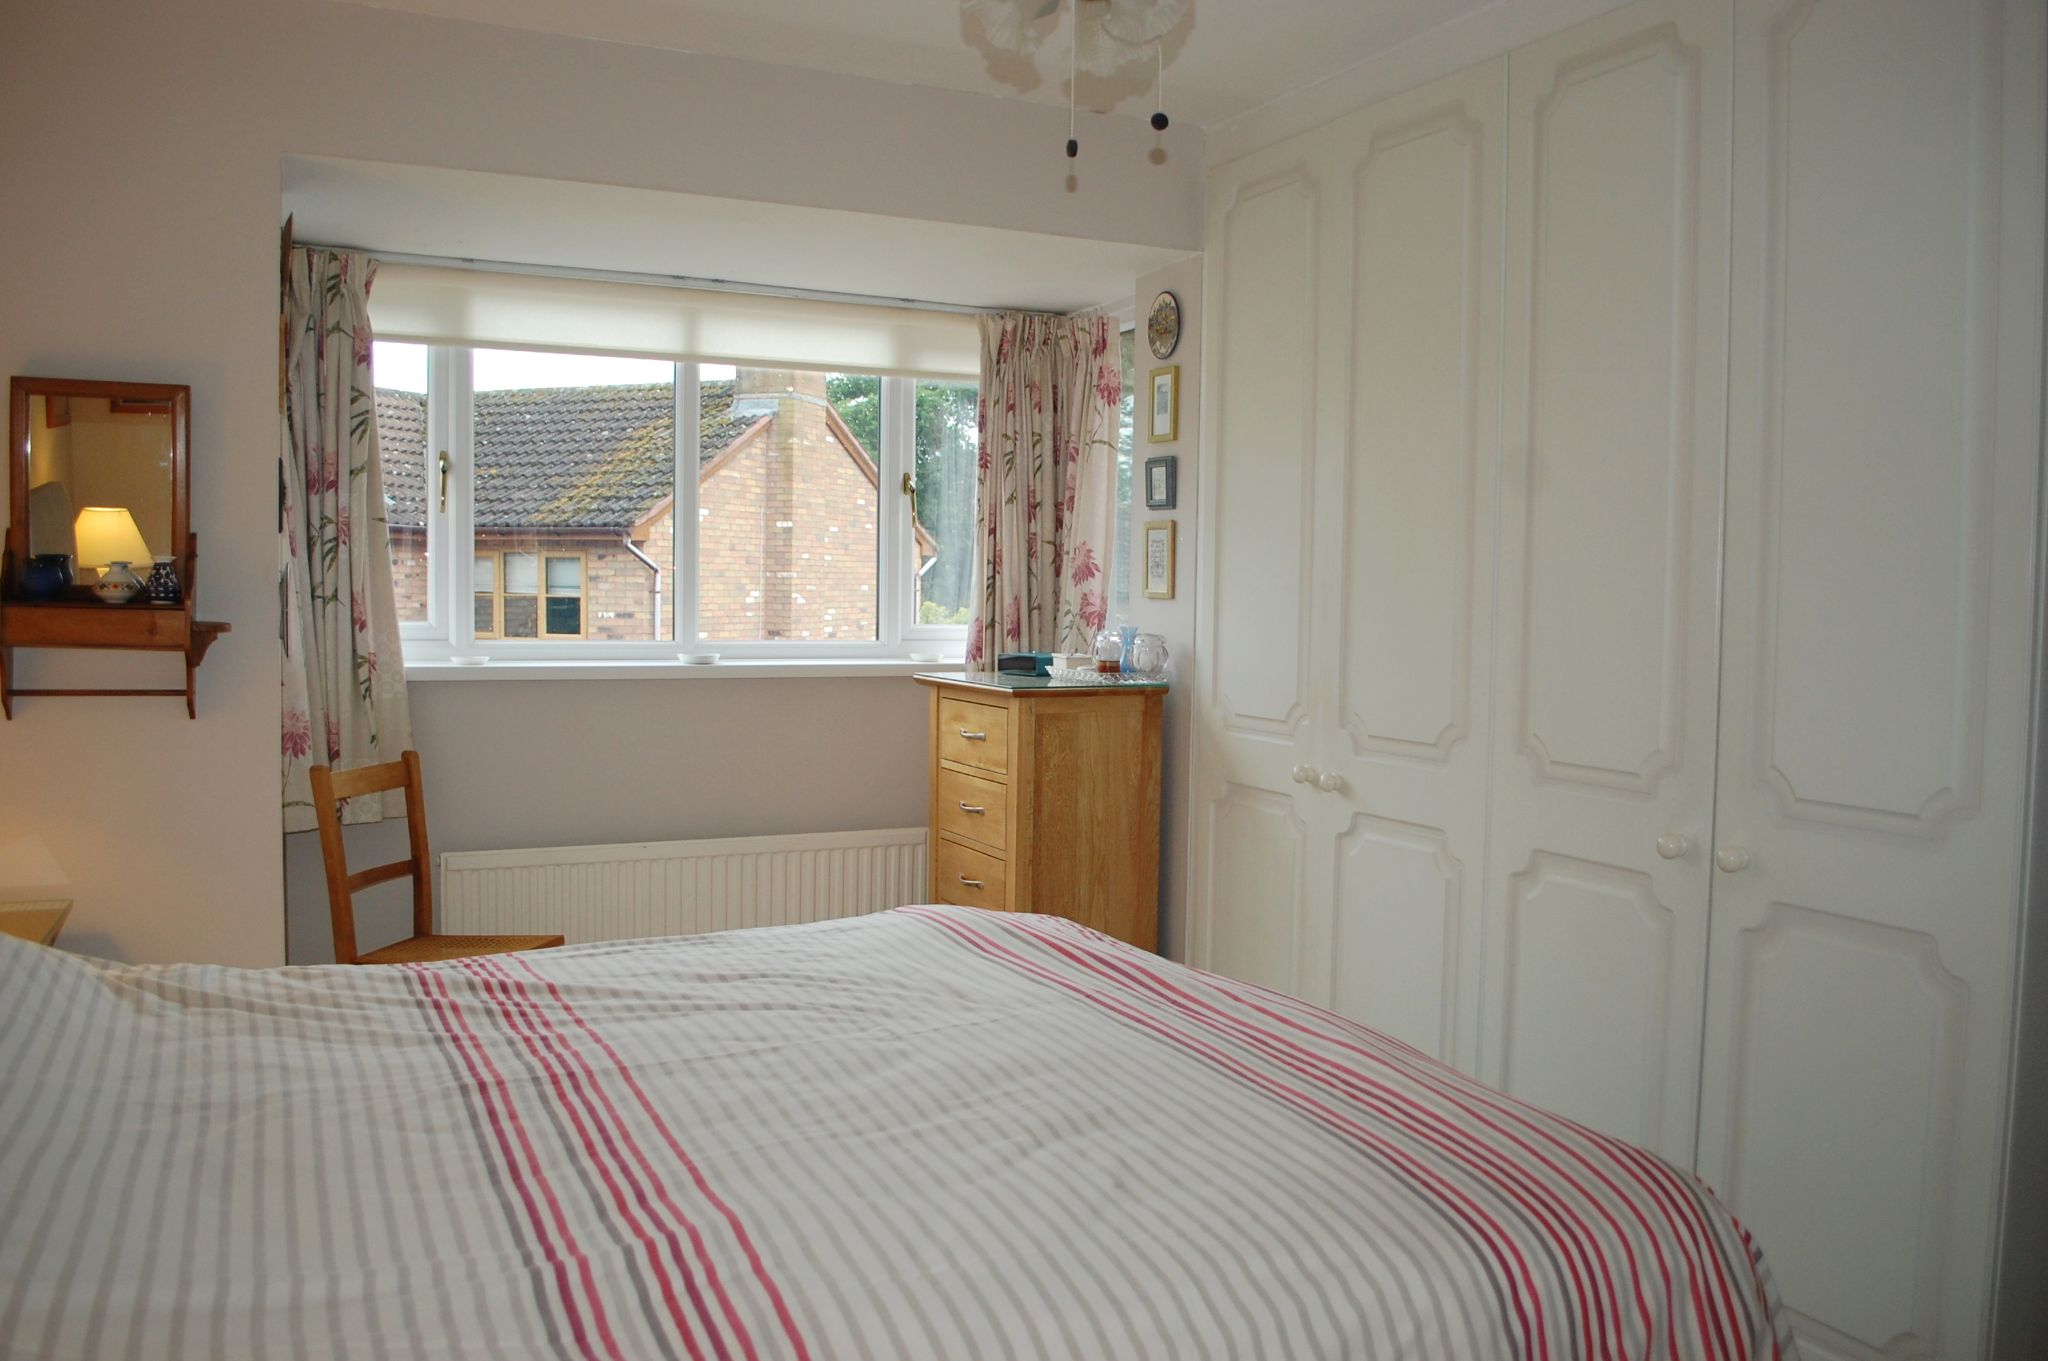 4 bedroom detached house SSTC Alcester - Photograph 12